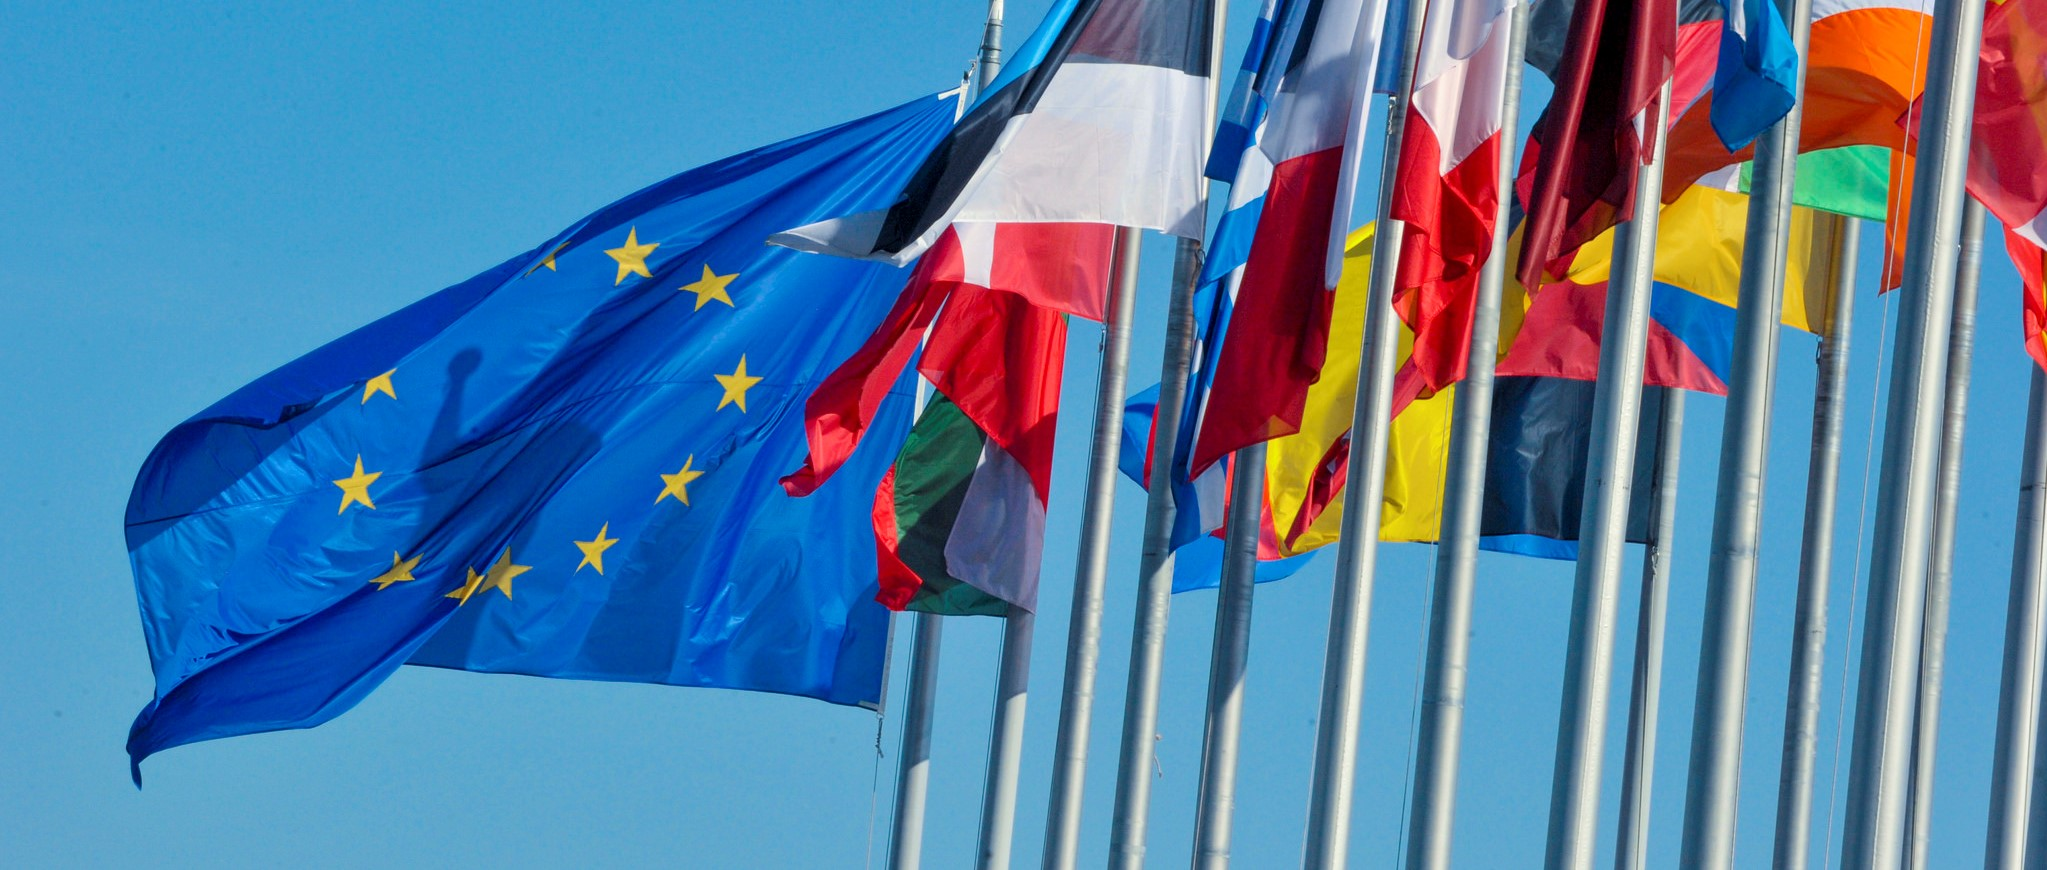 European Union is proposing the first law to Artificial Intelligence